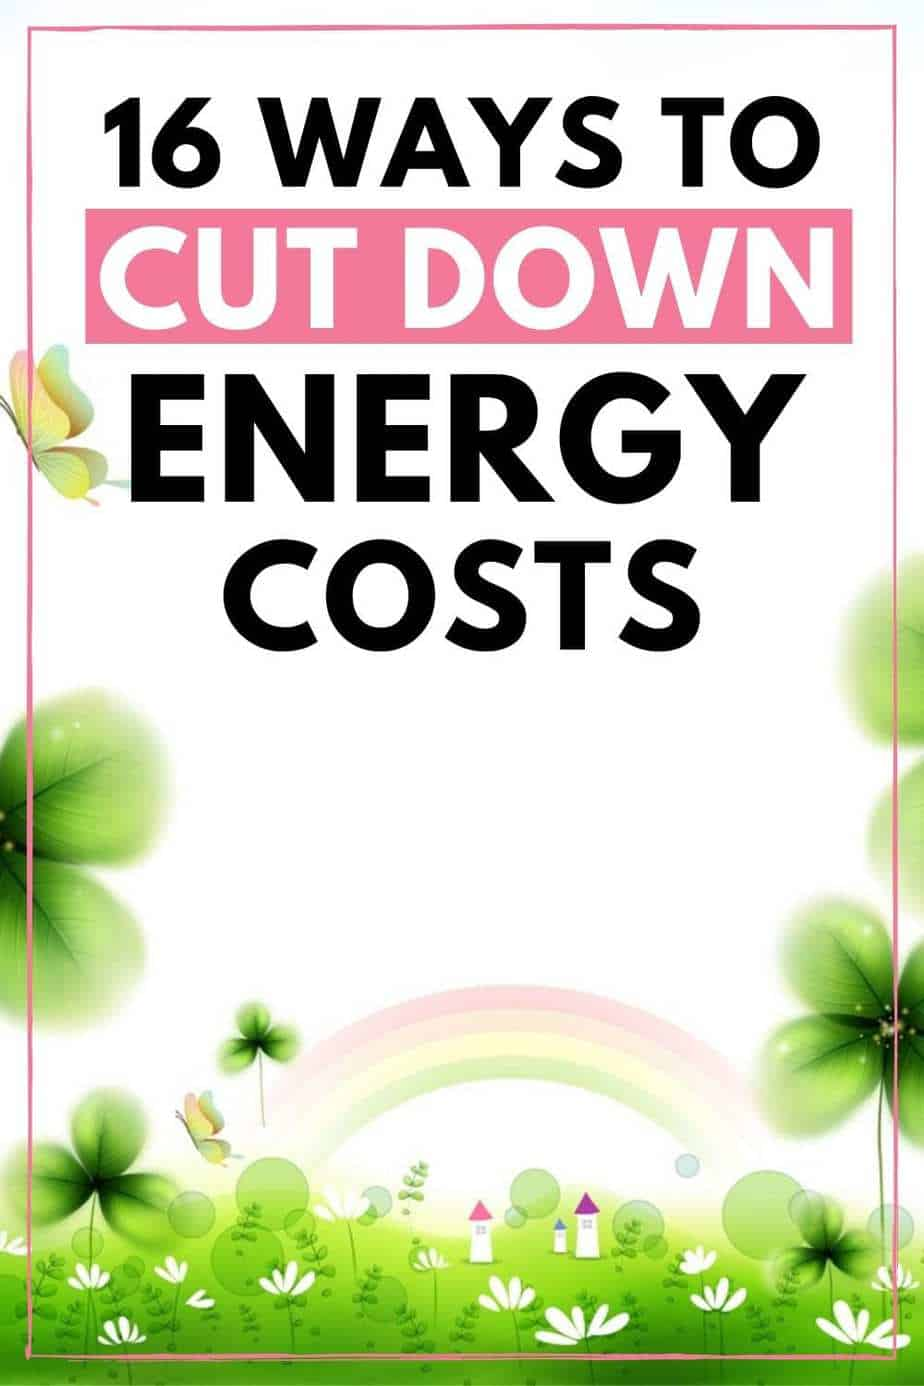 16 ways to cut down energy costs